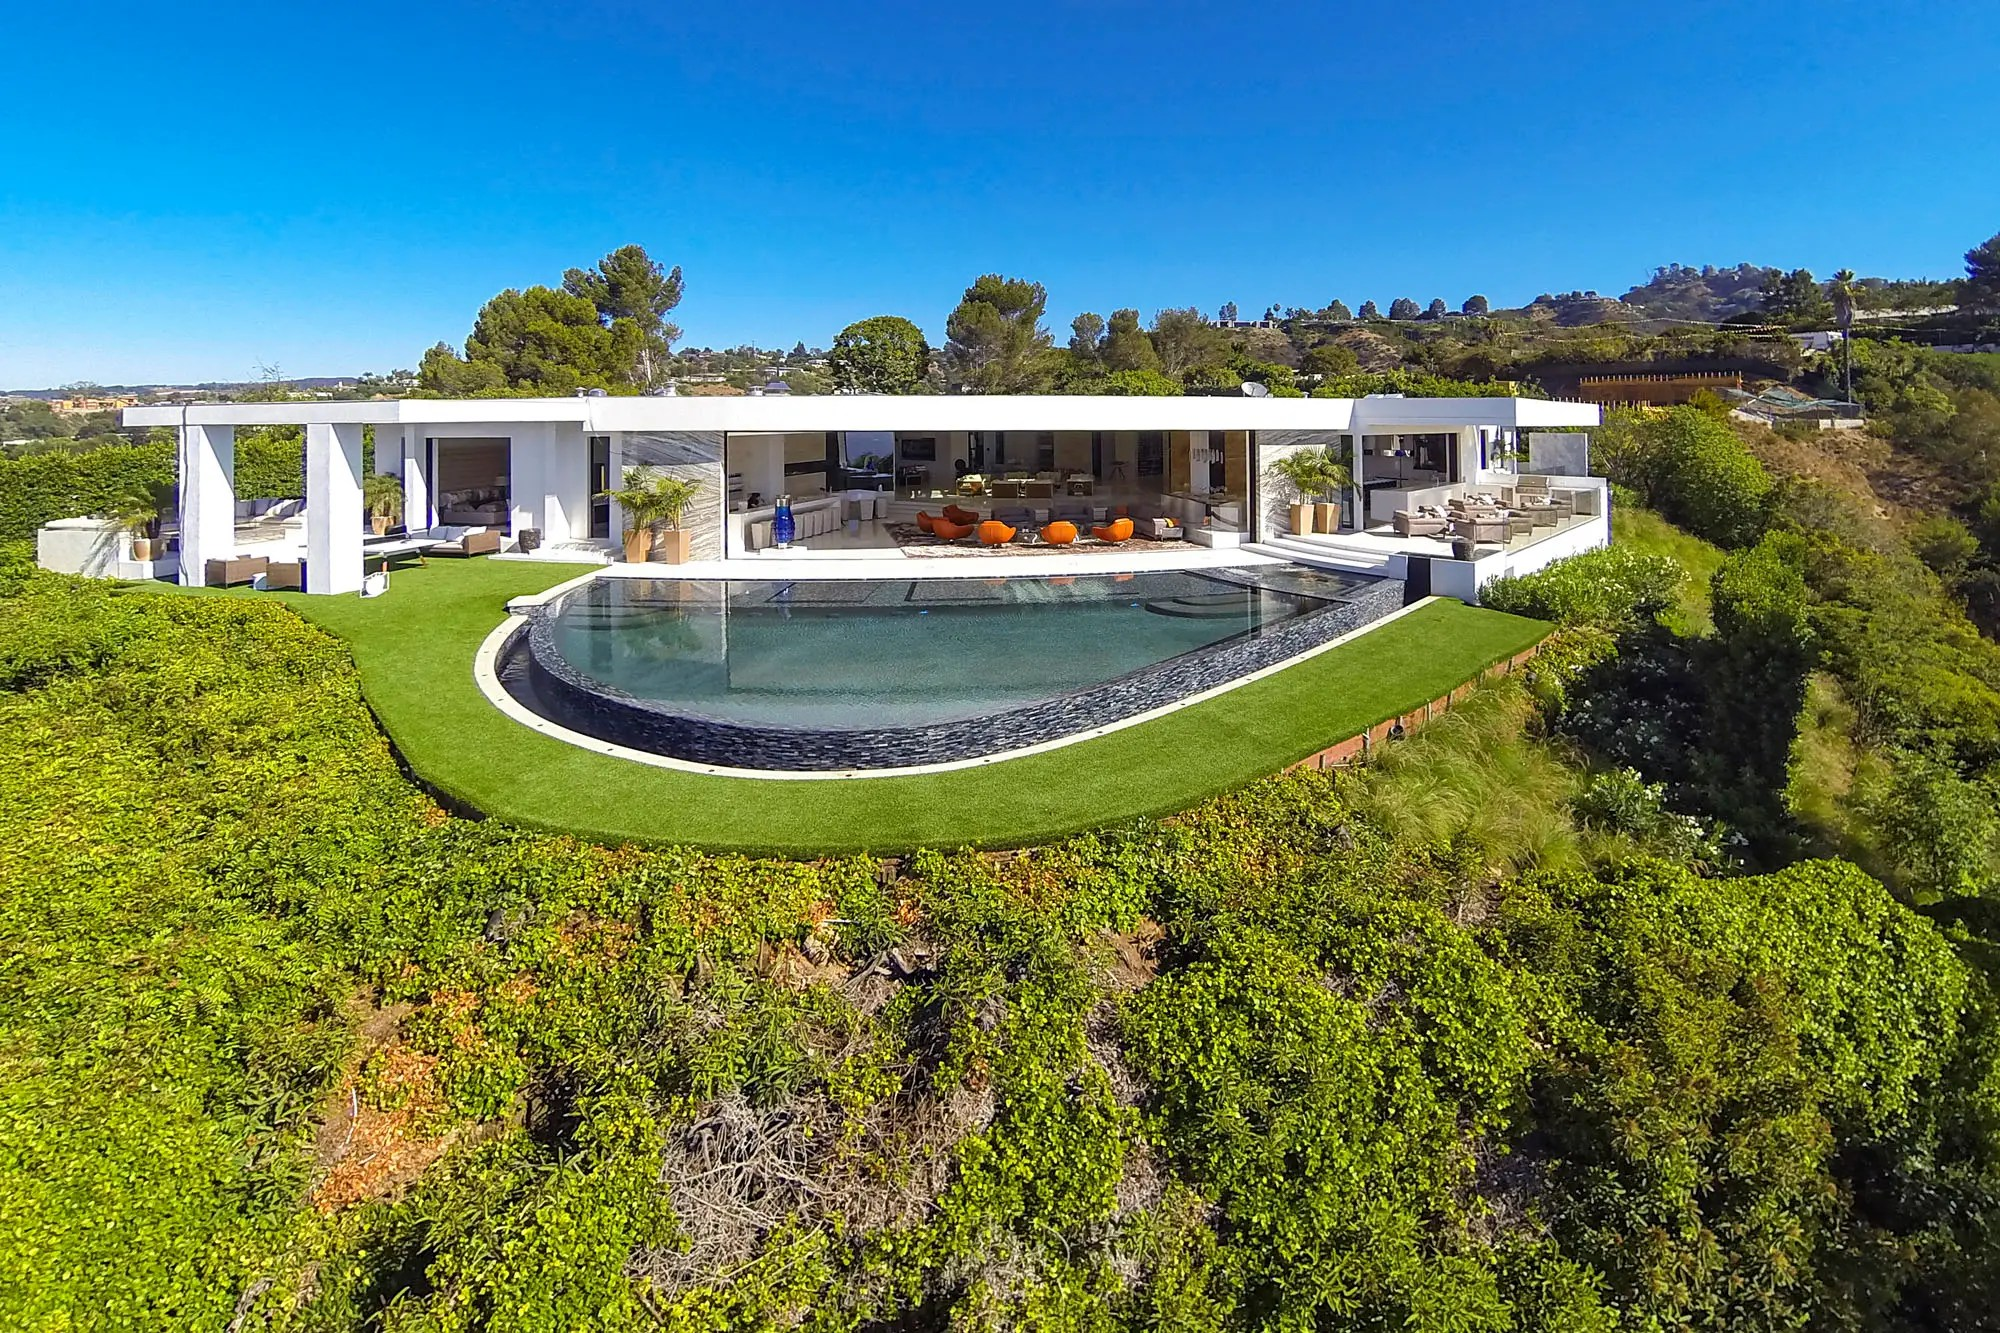 Welcome to 1181 North Hillcrest. The home was listed in September for $85 million.